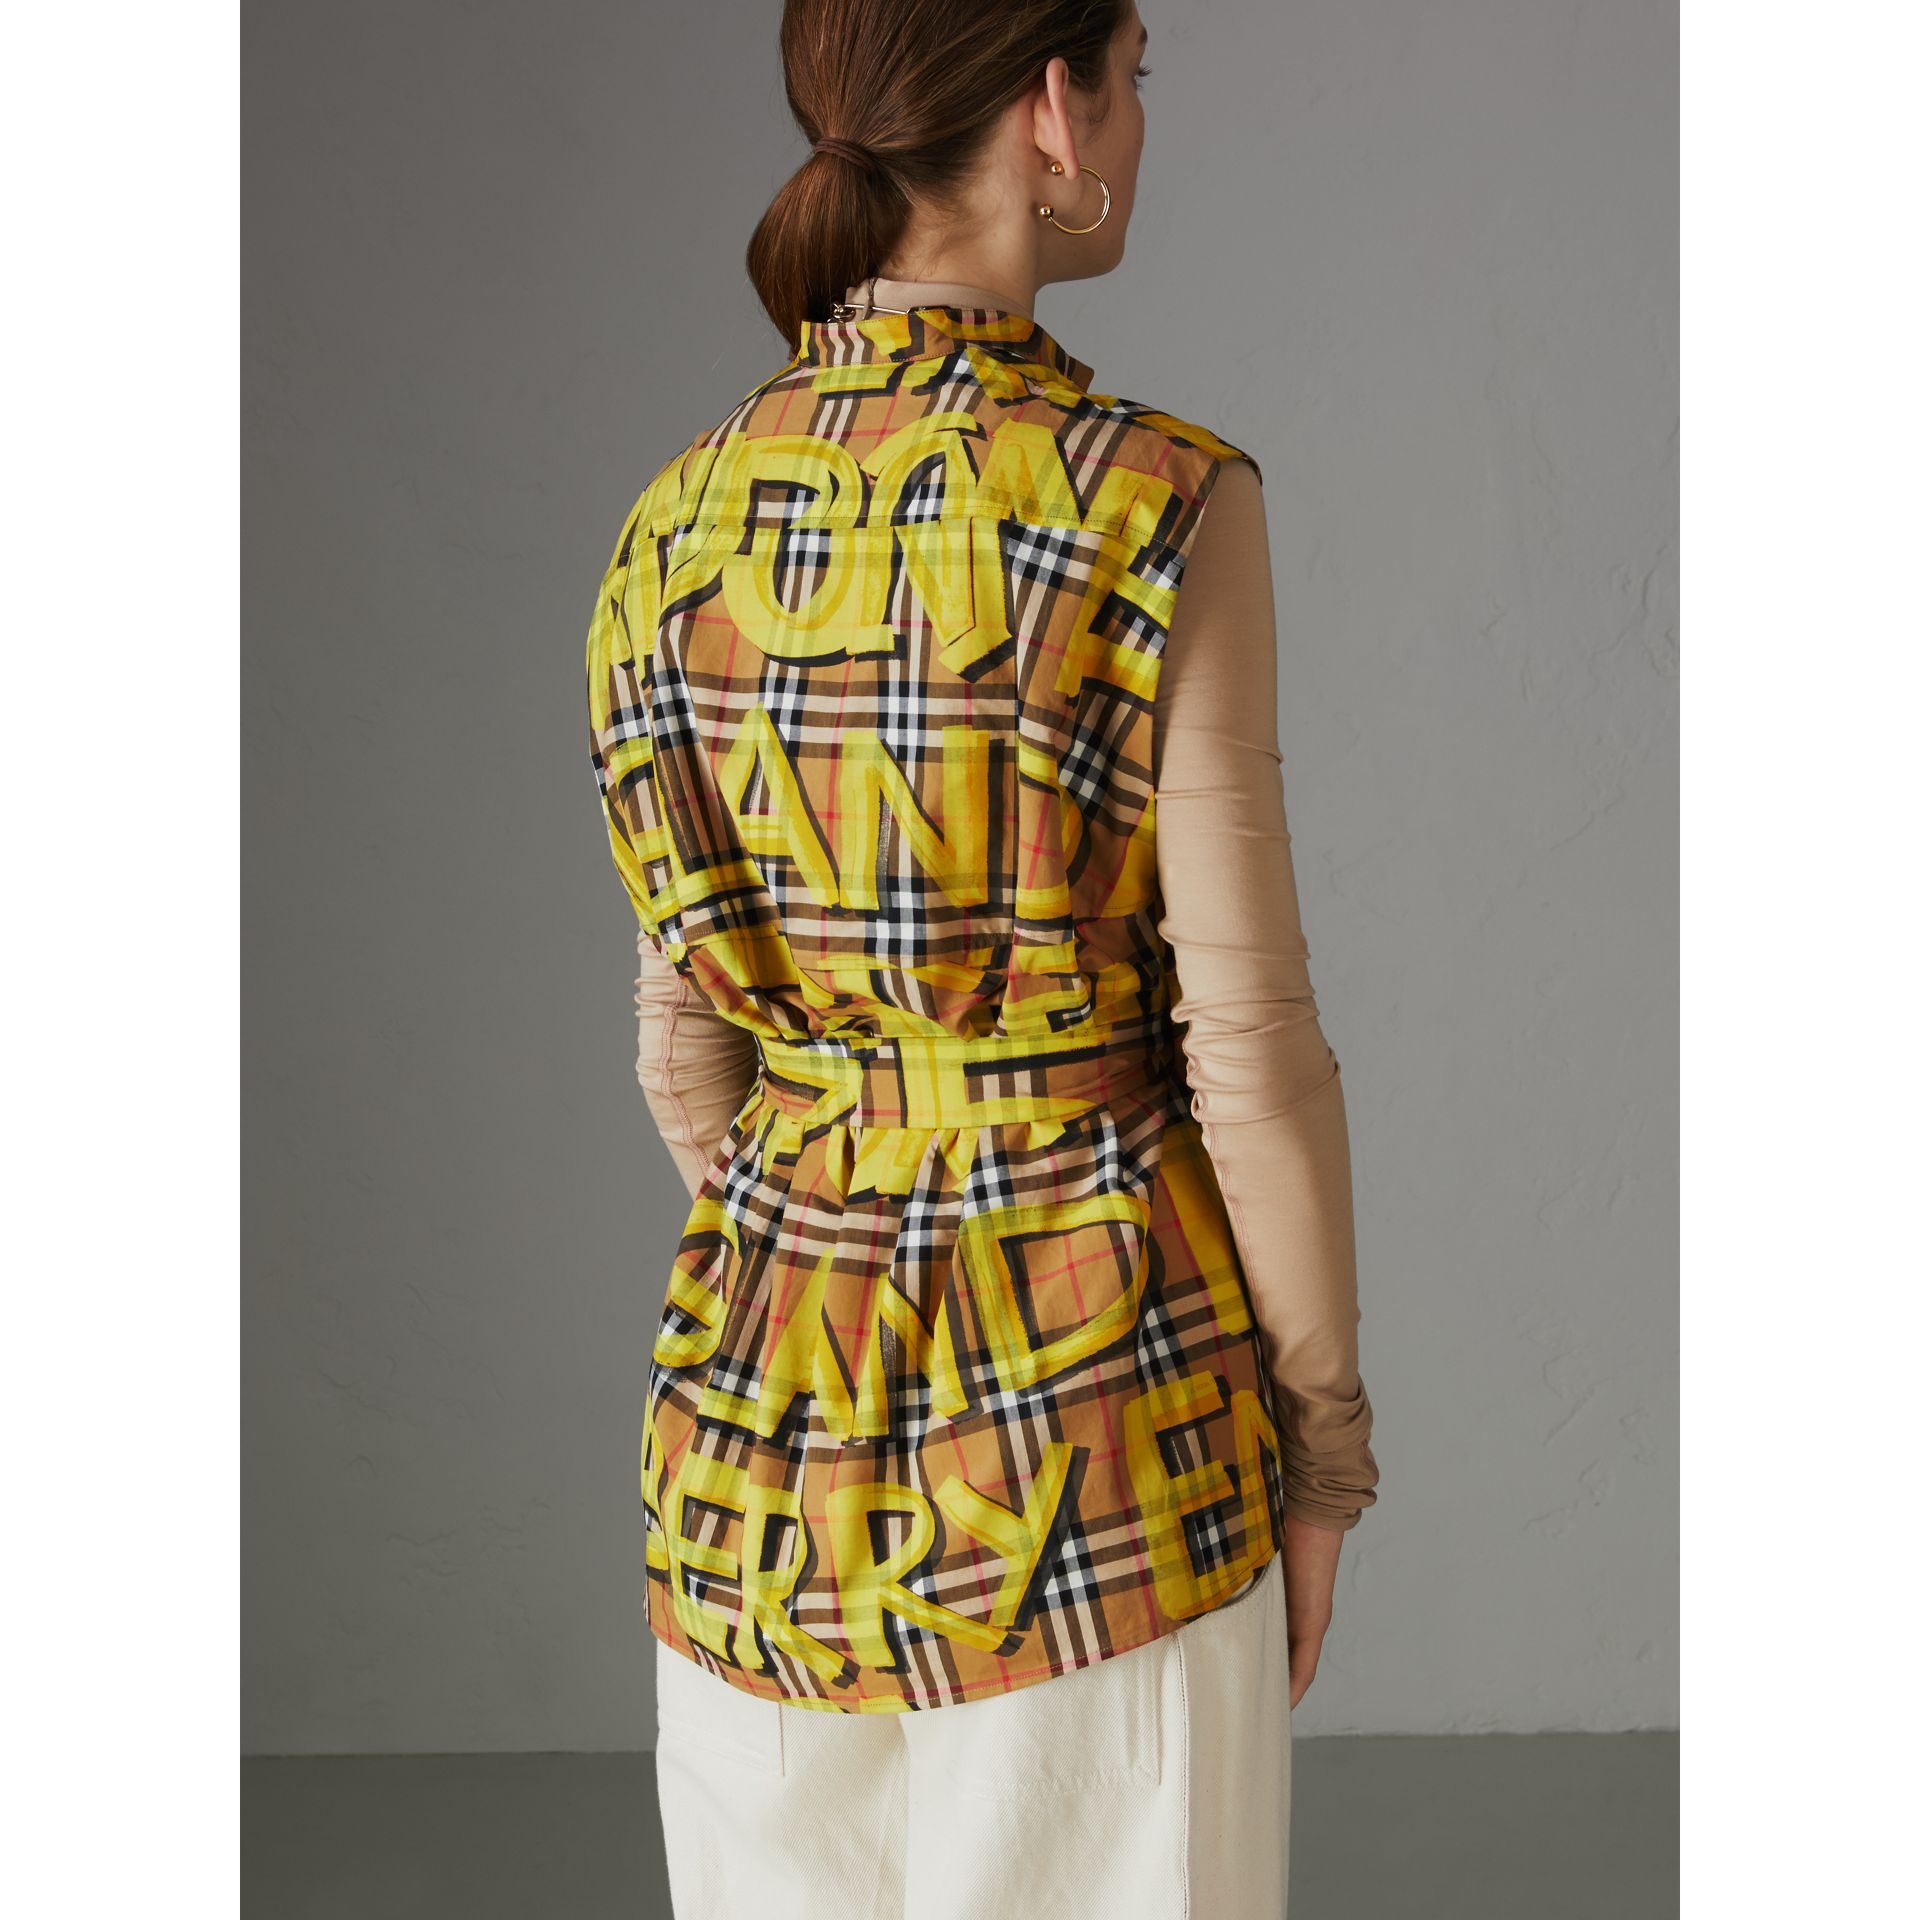 Sleeveless Graffiti Print Vintage Check Cotton Shirt in Bright Yellow - Women | Burberry - gallery image 2